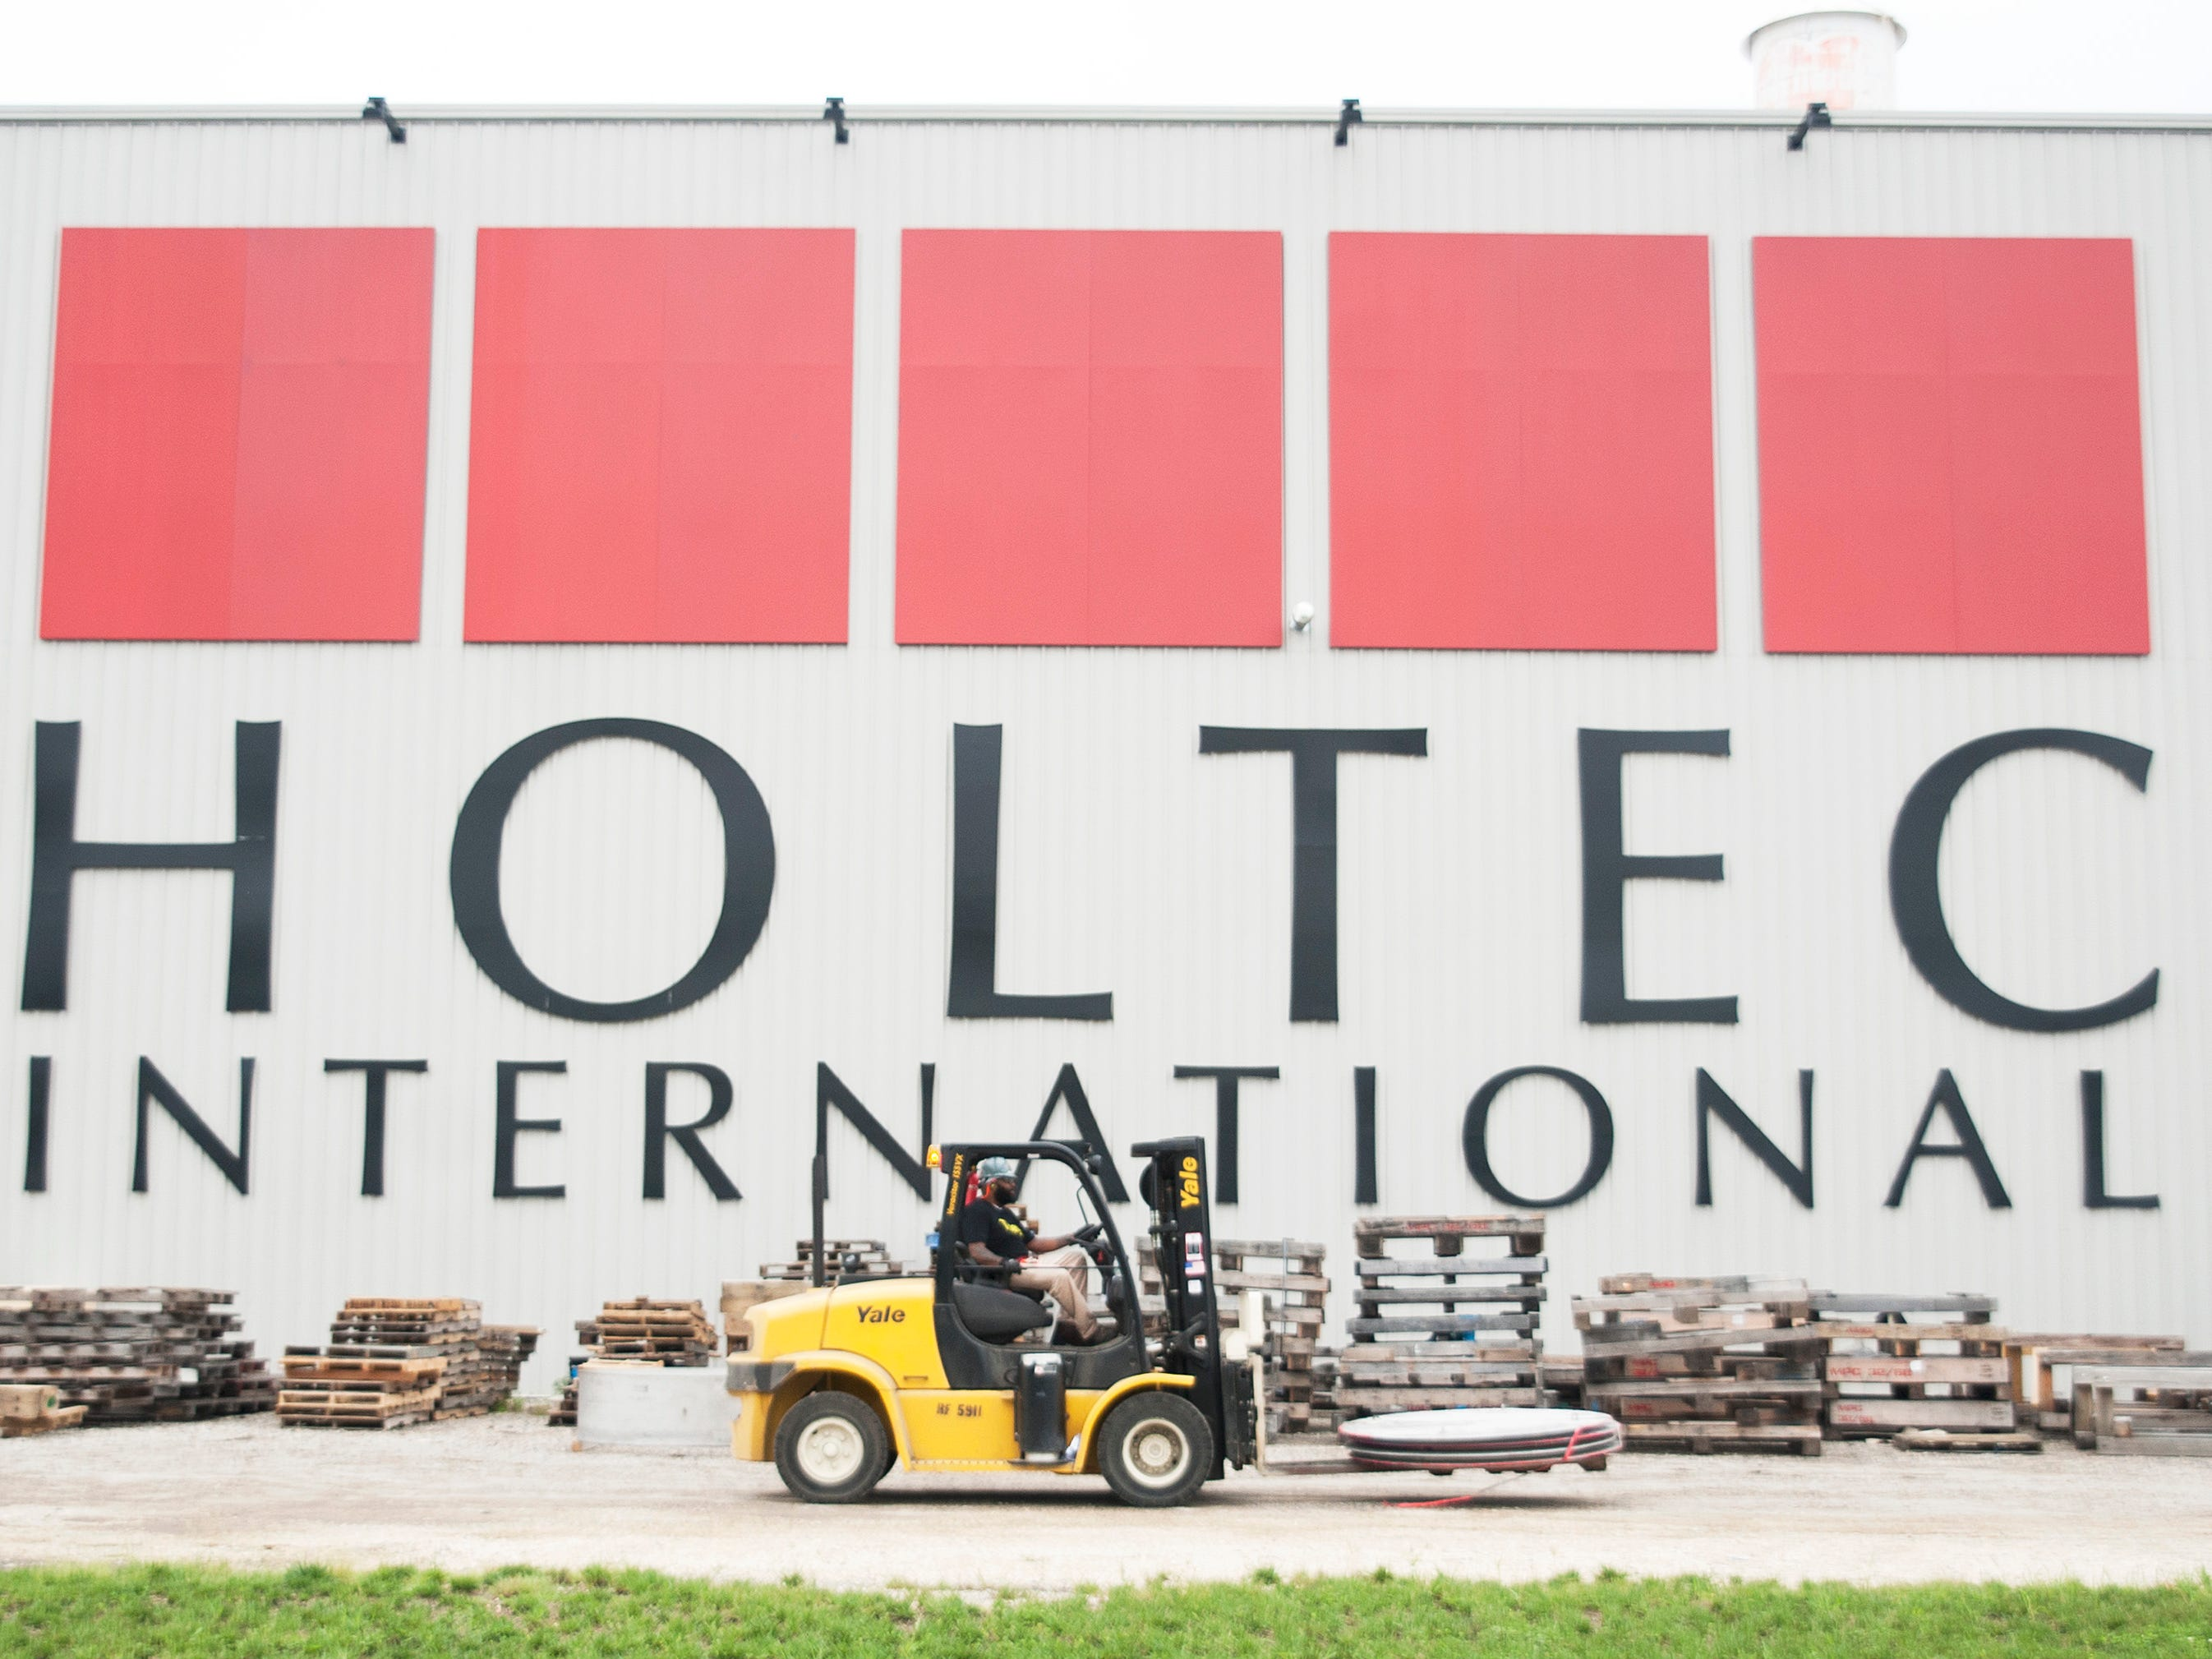 Holtec seeks approval to buy, scrap nuclear power plant